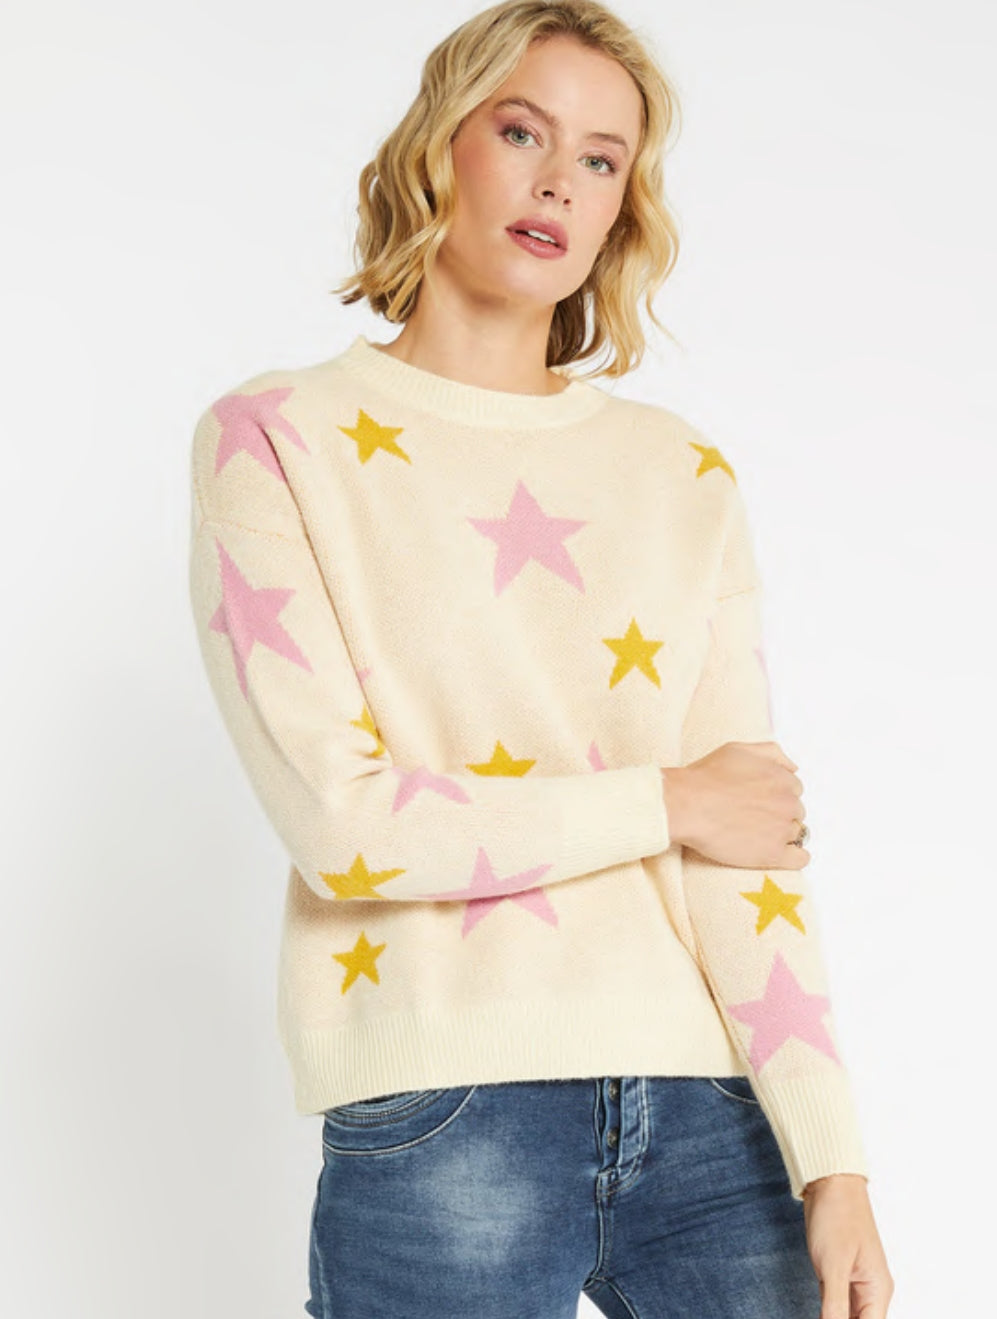 Two Tone Star Knit Cream